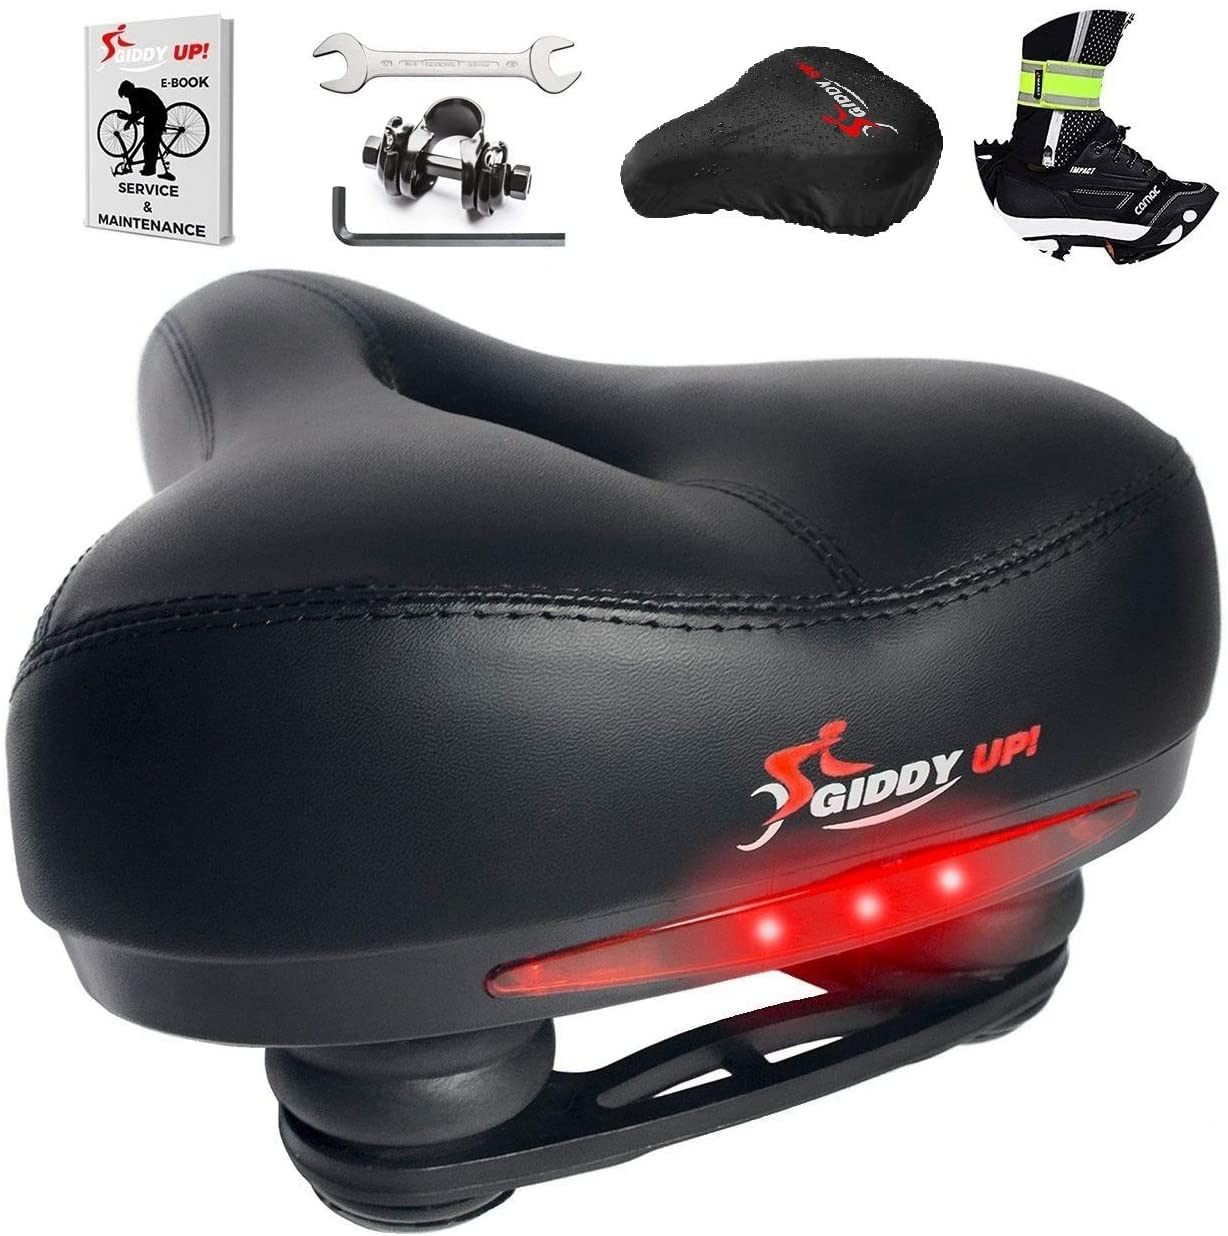 Giddy Up! Memory Foam Waterproof Bike Saddle